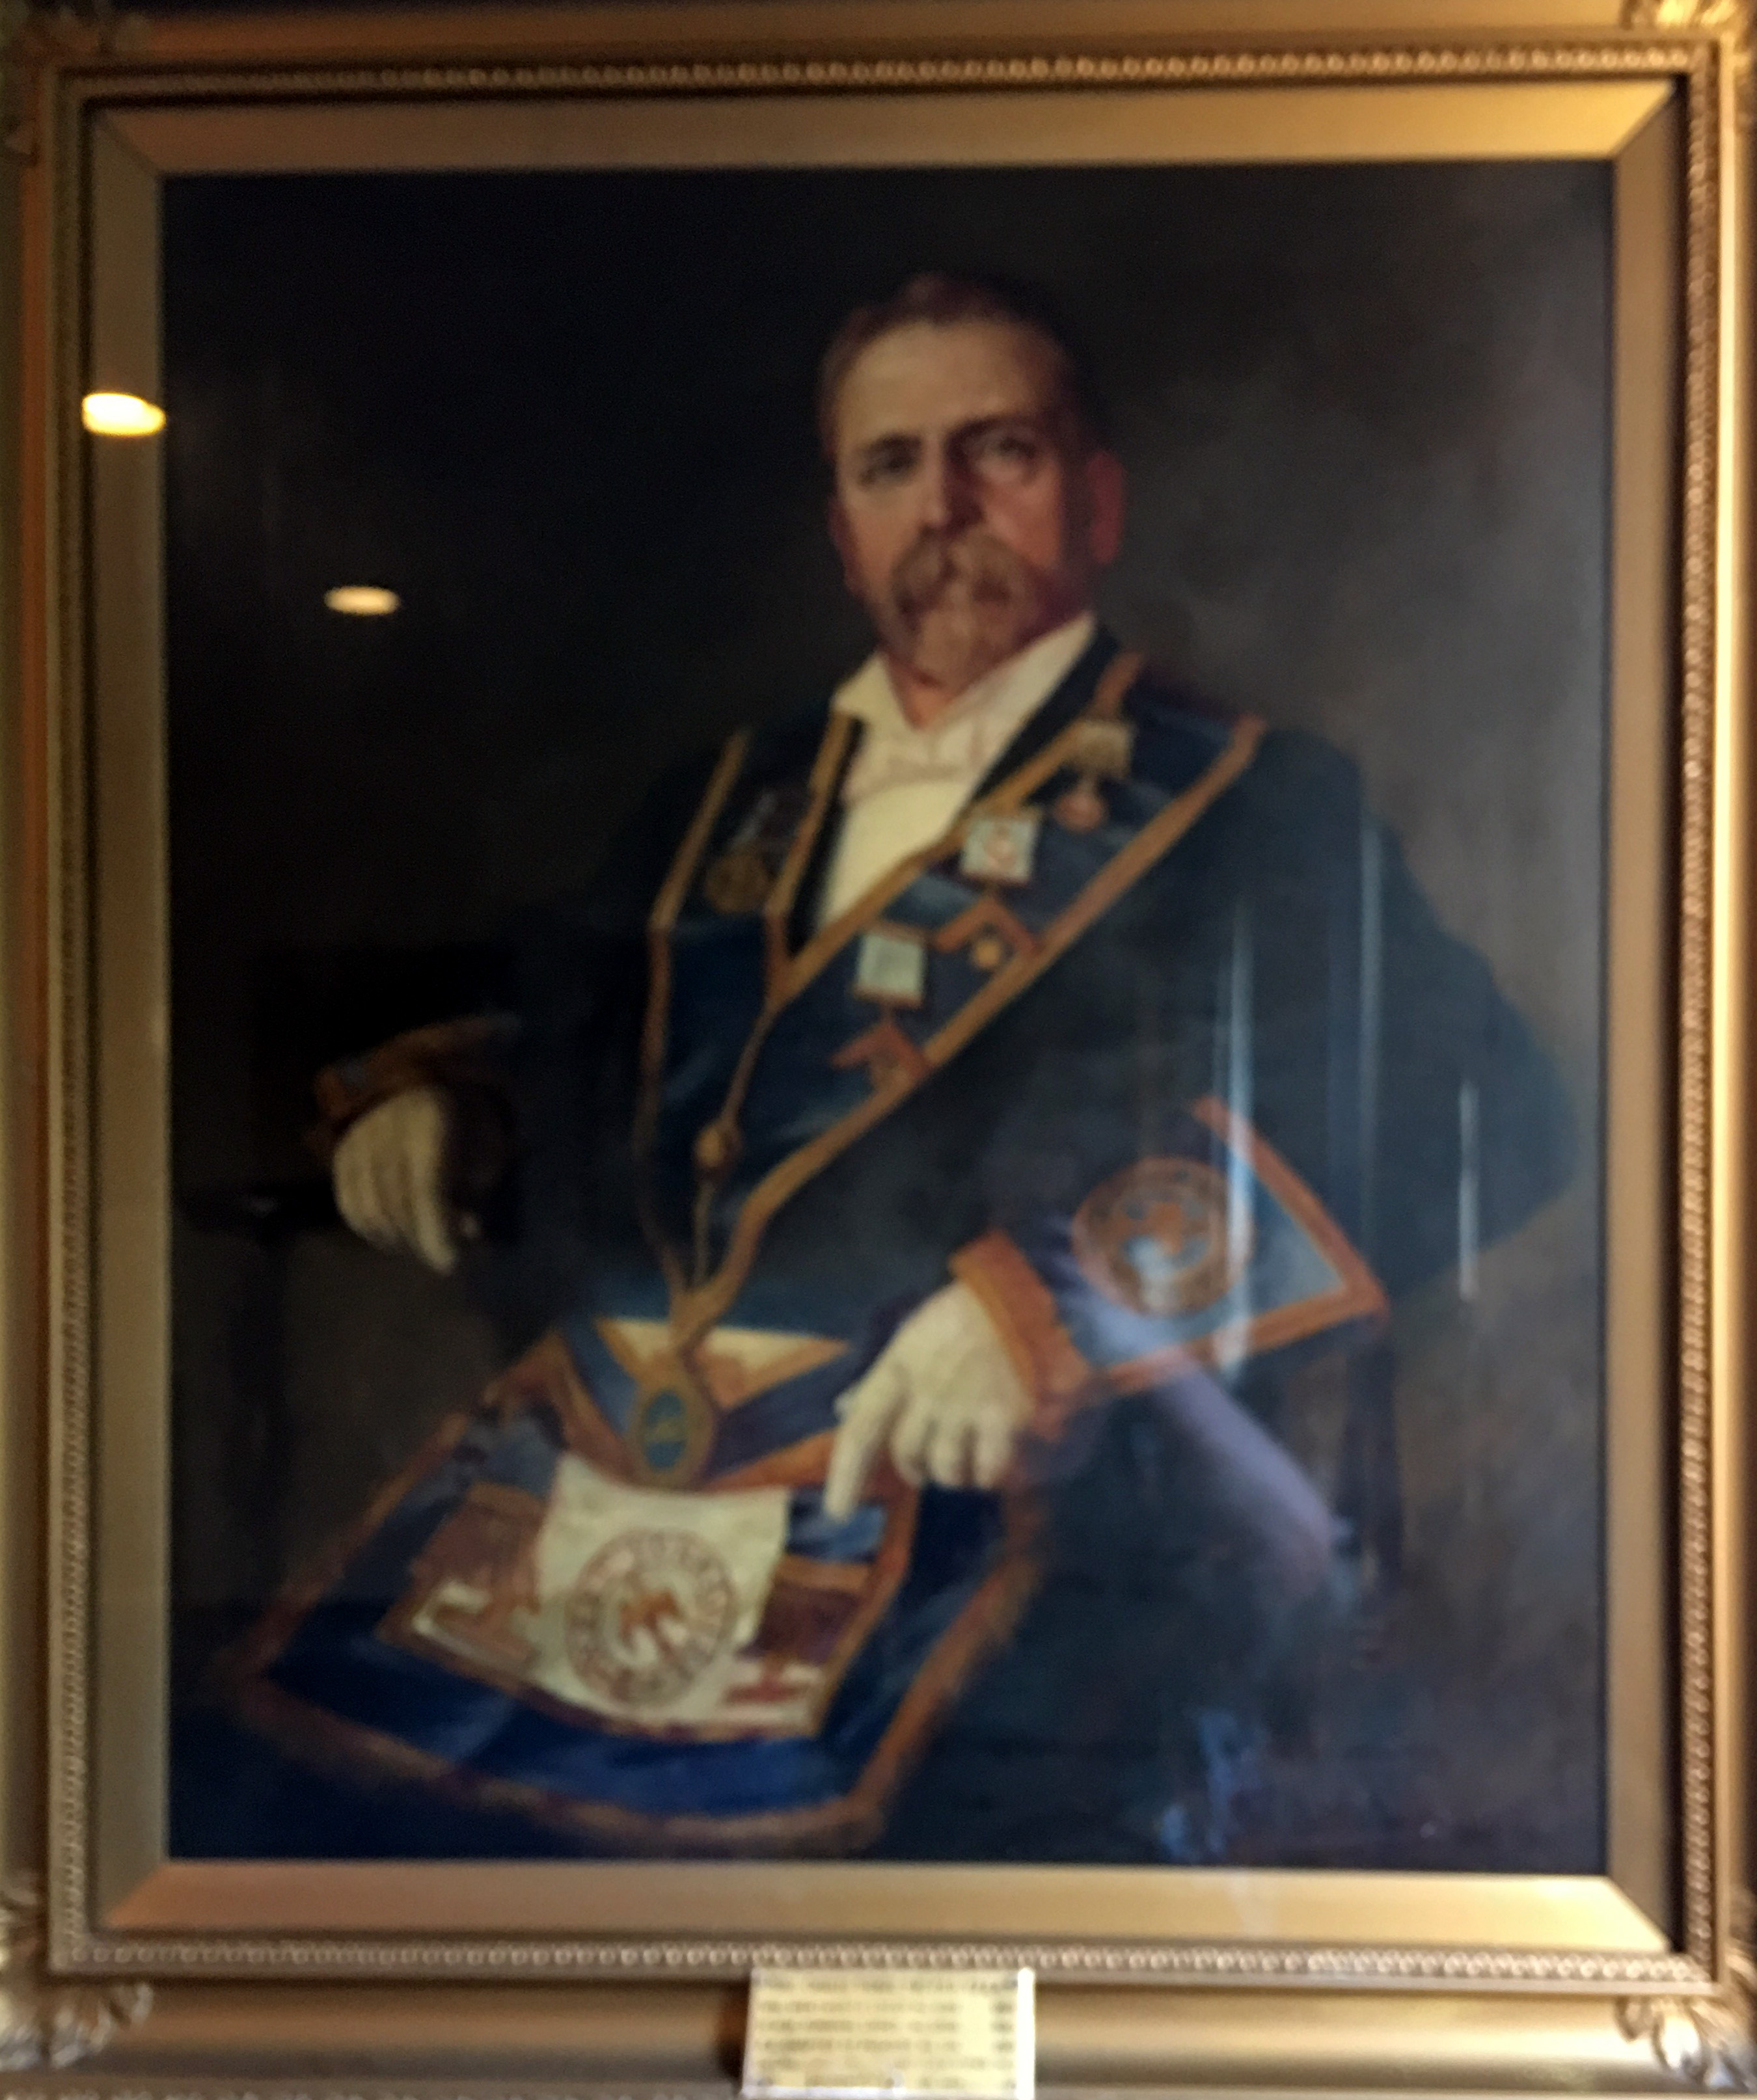 Charles Stokes: Sheffield football's most famous man that